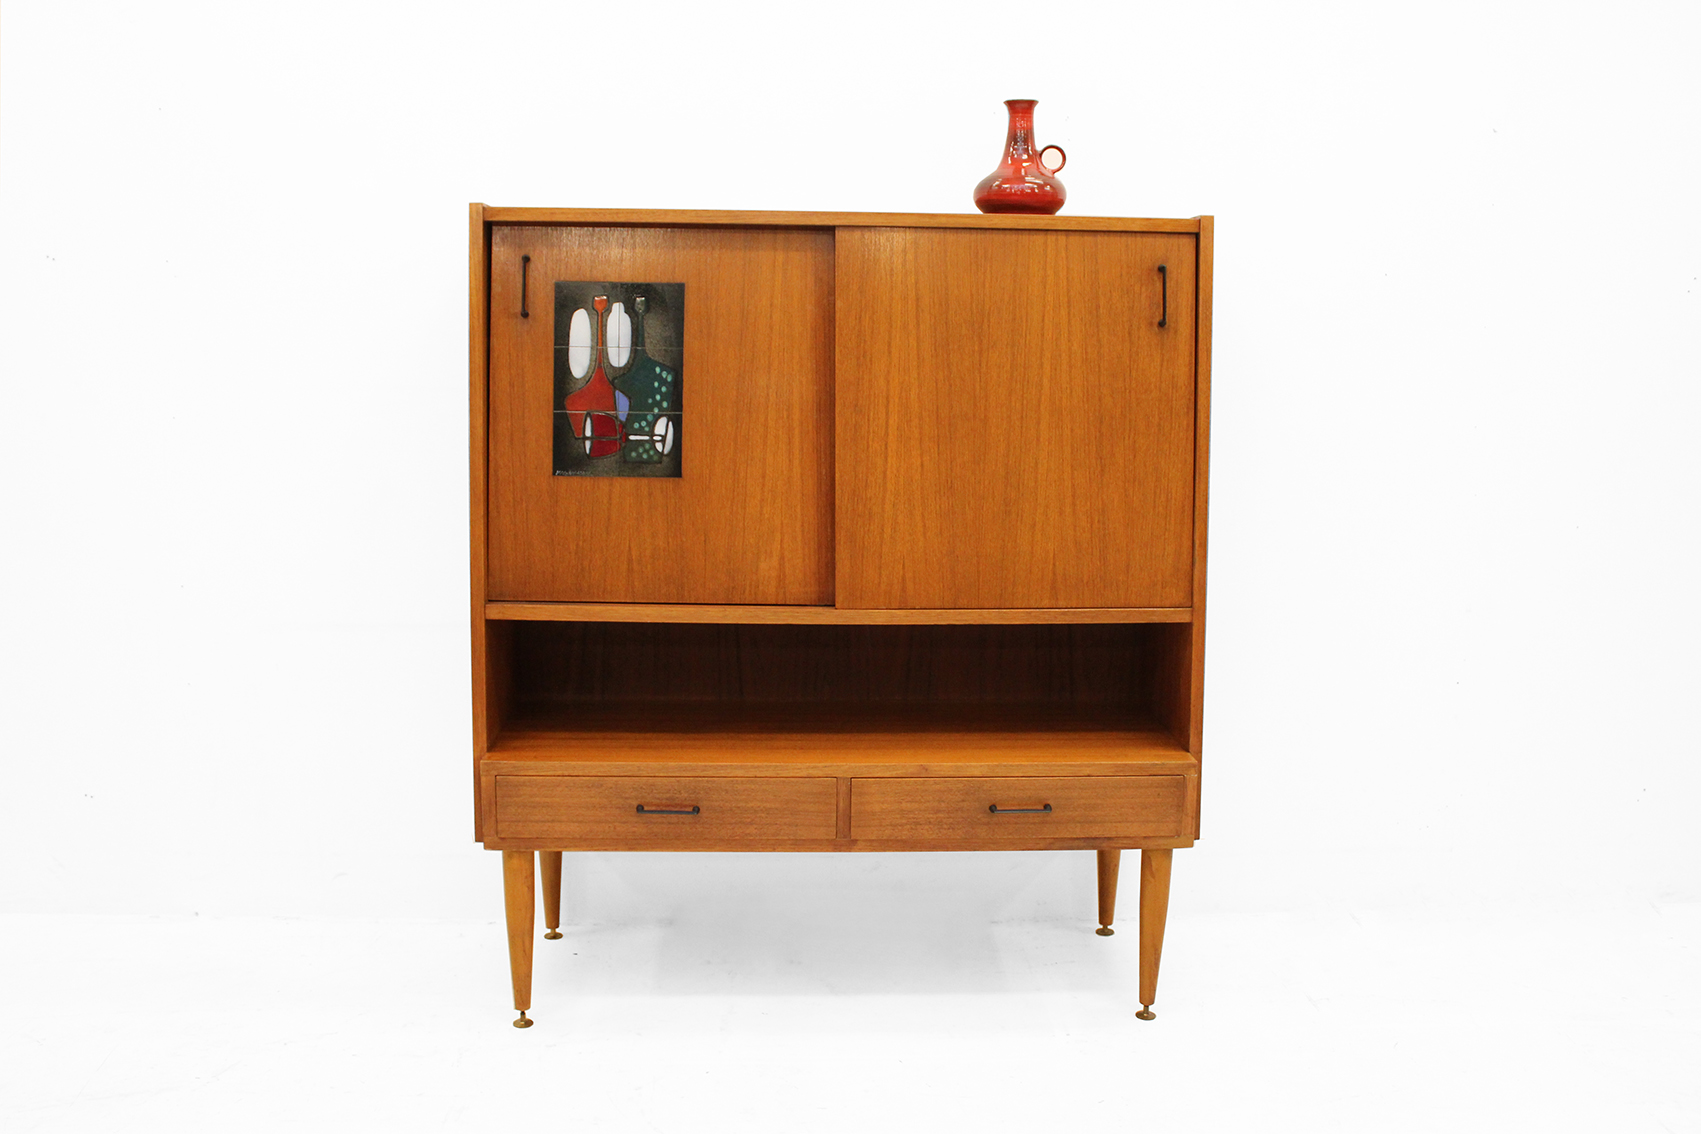 Barcabinet with ceramic accent